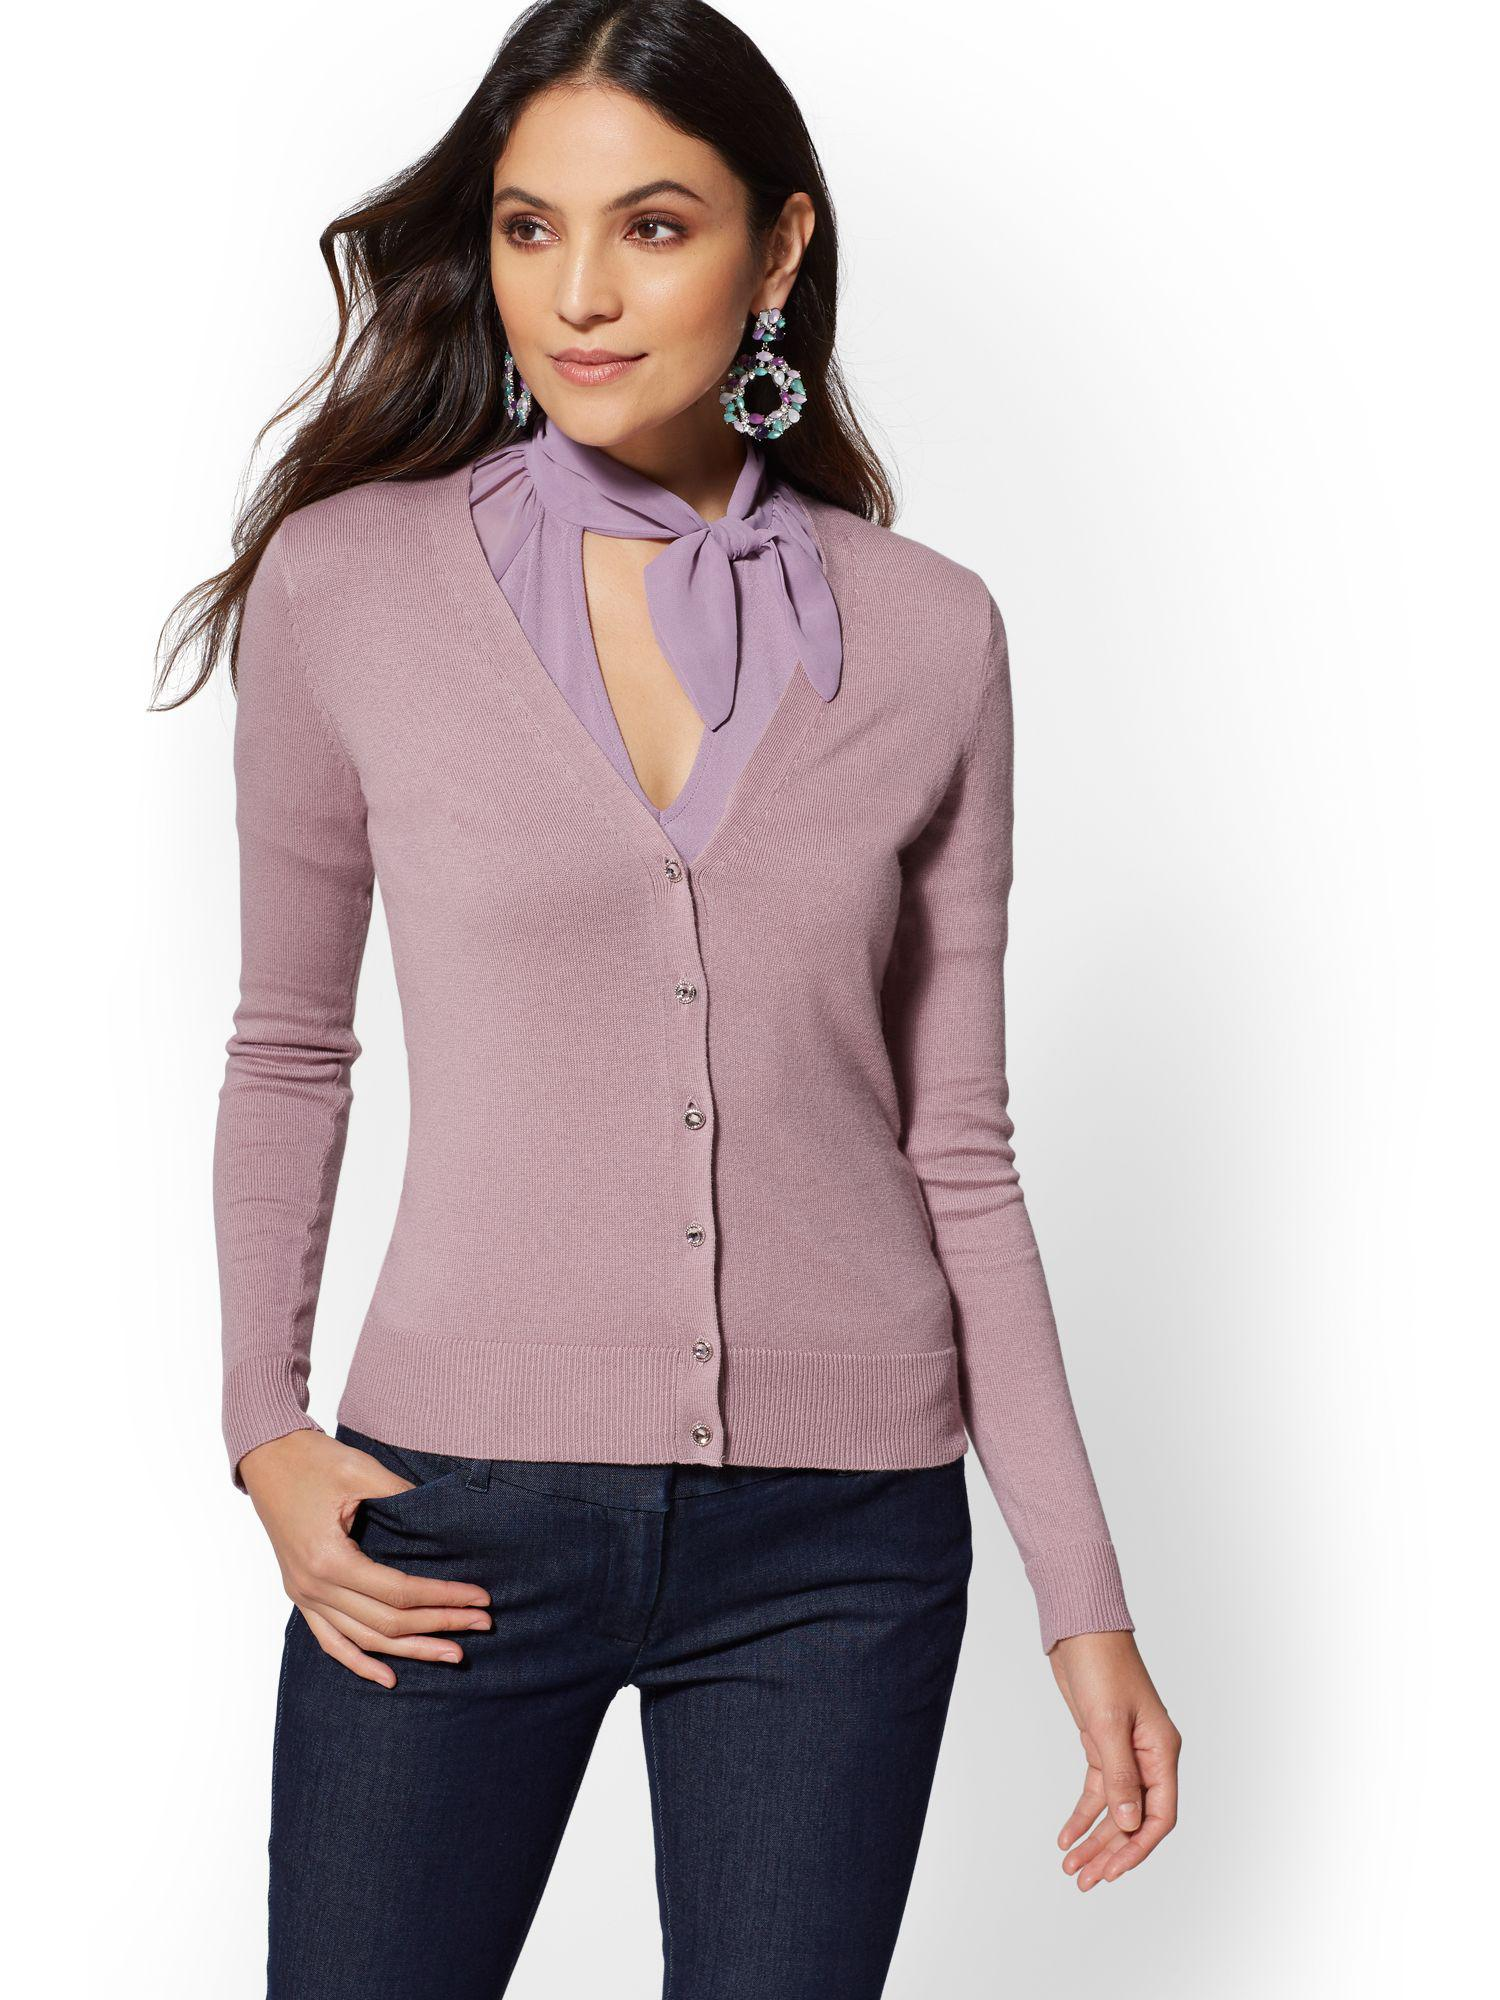 71d1f430ad0 New York & Company 7th Avenue - Tall Jeweled V-neck Chelsea Cardigan ...